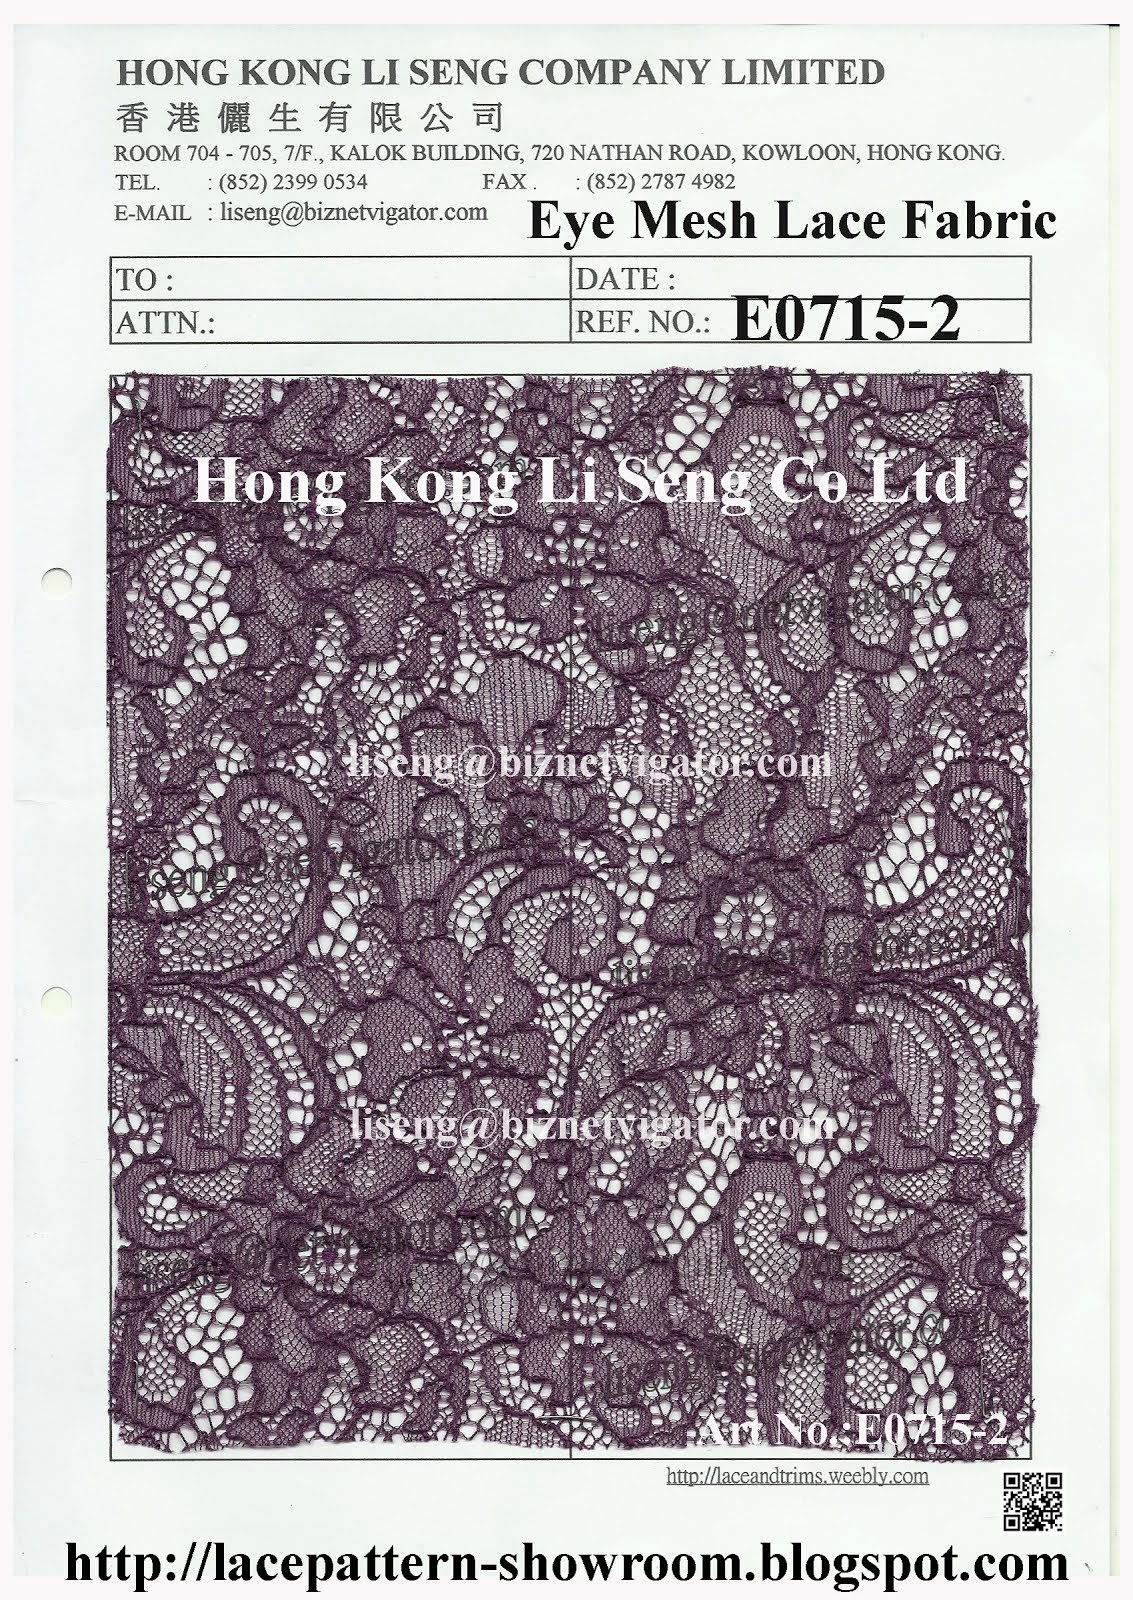 Introduce the Good Lace Trims, Lace Fabric Factory Wholesaler Supplier - Hong Kong Li Seng Co Ltd